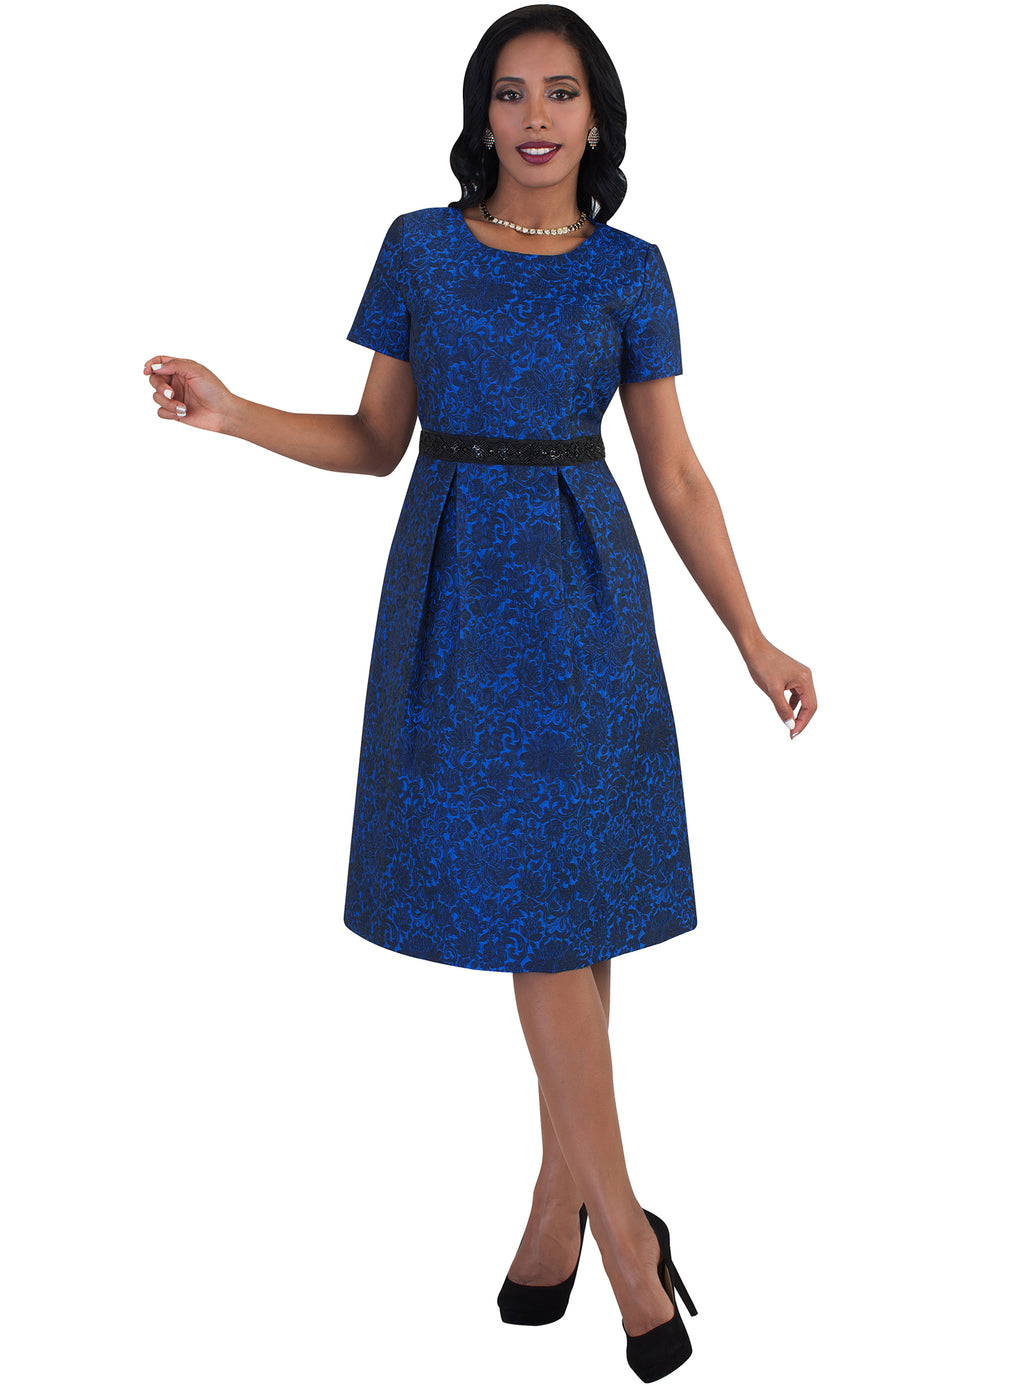 Damask Brocade Dress in Royal